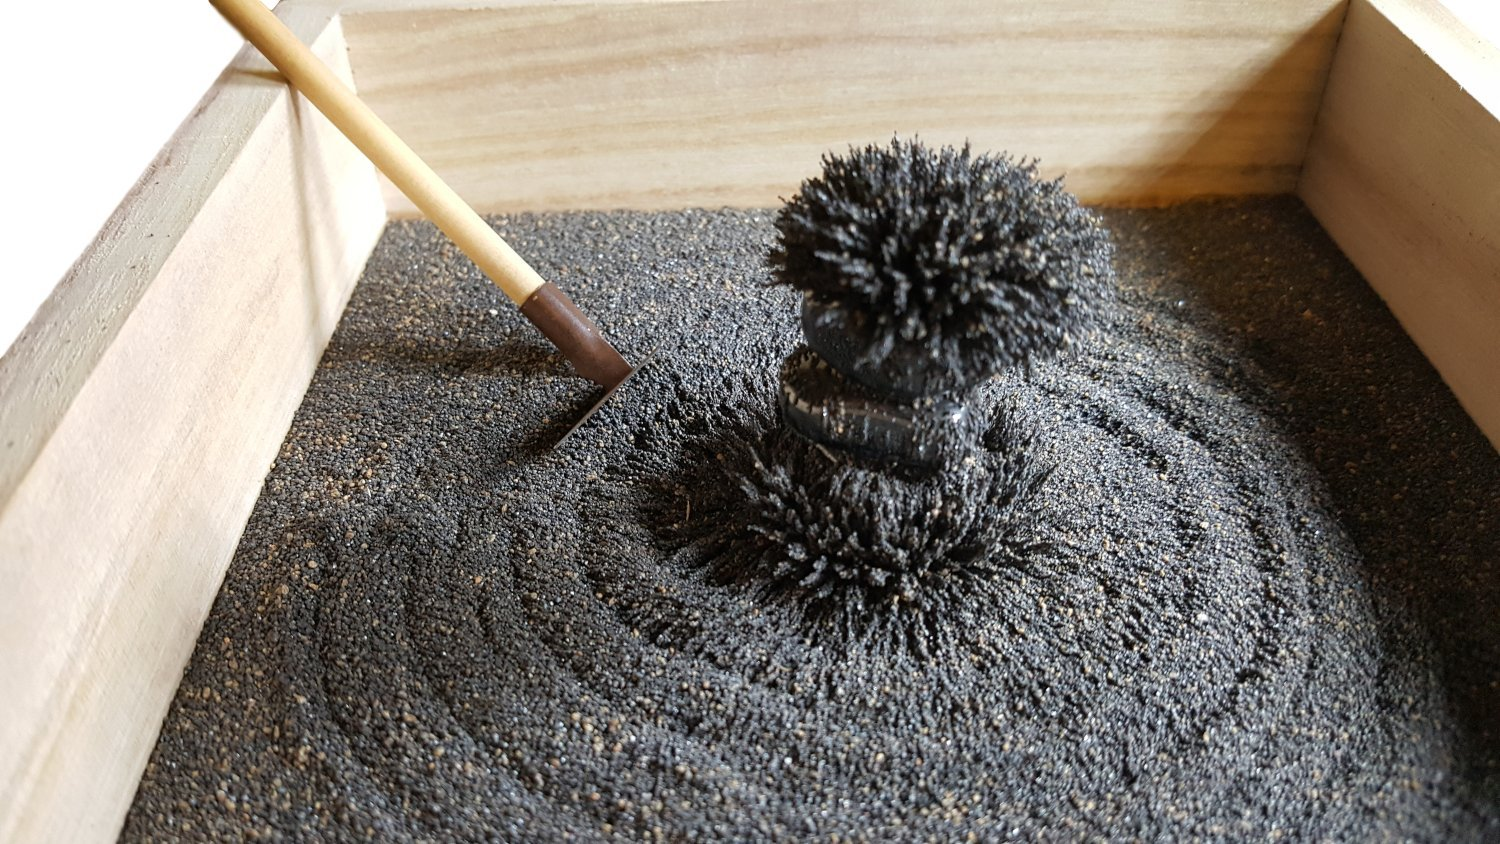 MagZen - Unique Magnetic Zen Garden Zen Box, All Natural Real Magnetic Sand Mined from Arizona USA - Does Not Stain Hands by MagZen (Image #1)